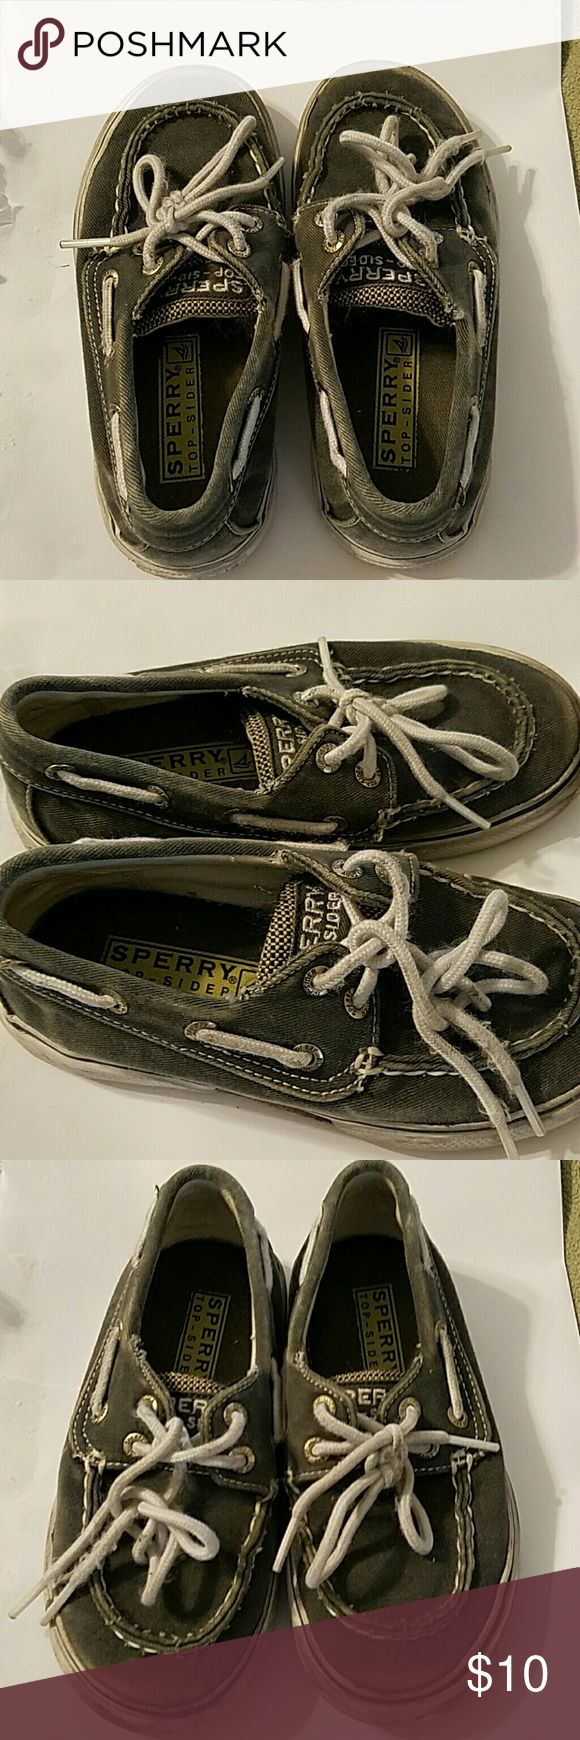 Toddler Sperry top sider Shoes Used shoes for toddler boy. Sperry Top-Sider Shoes